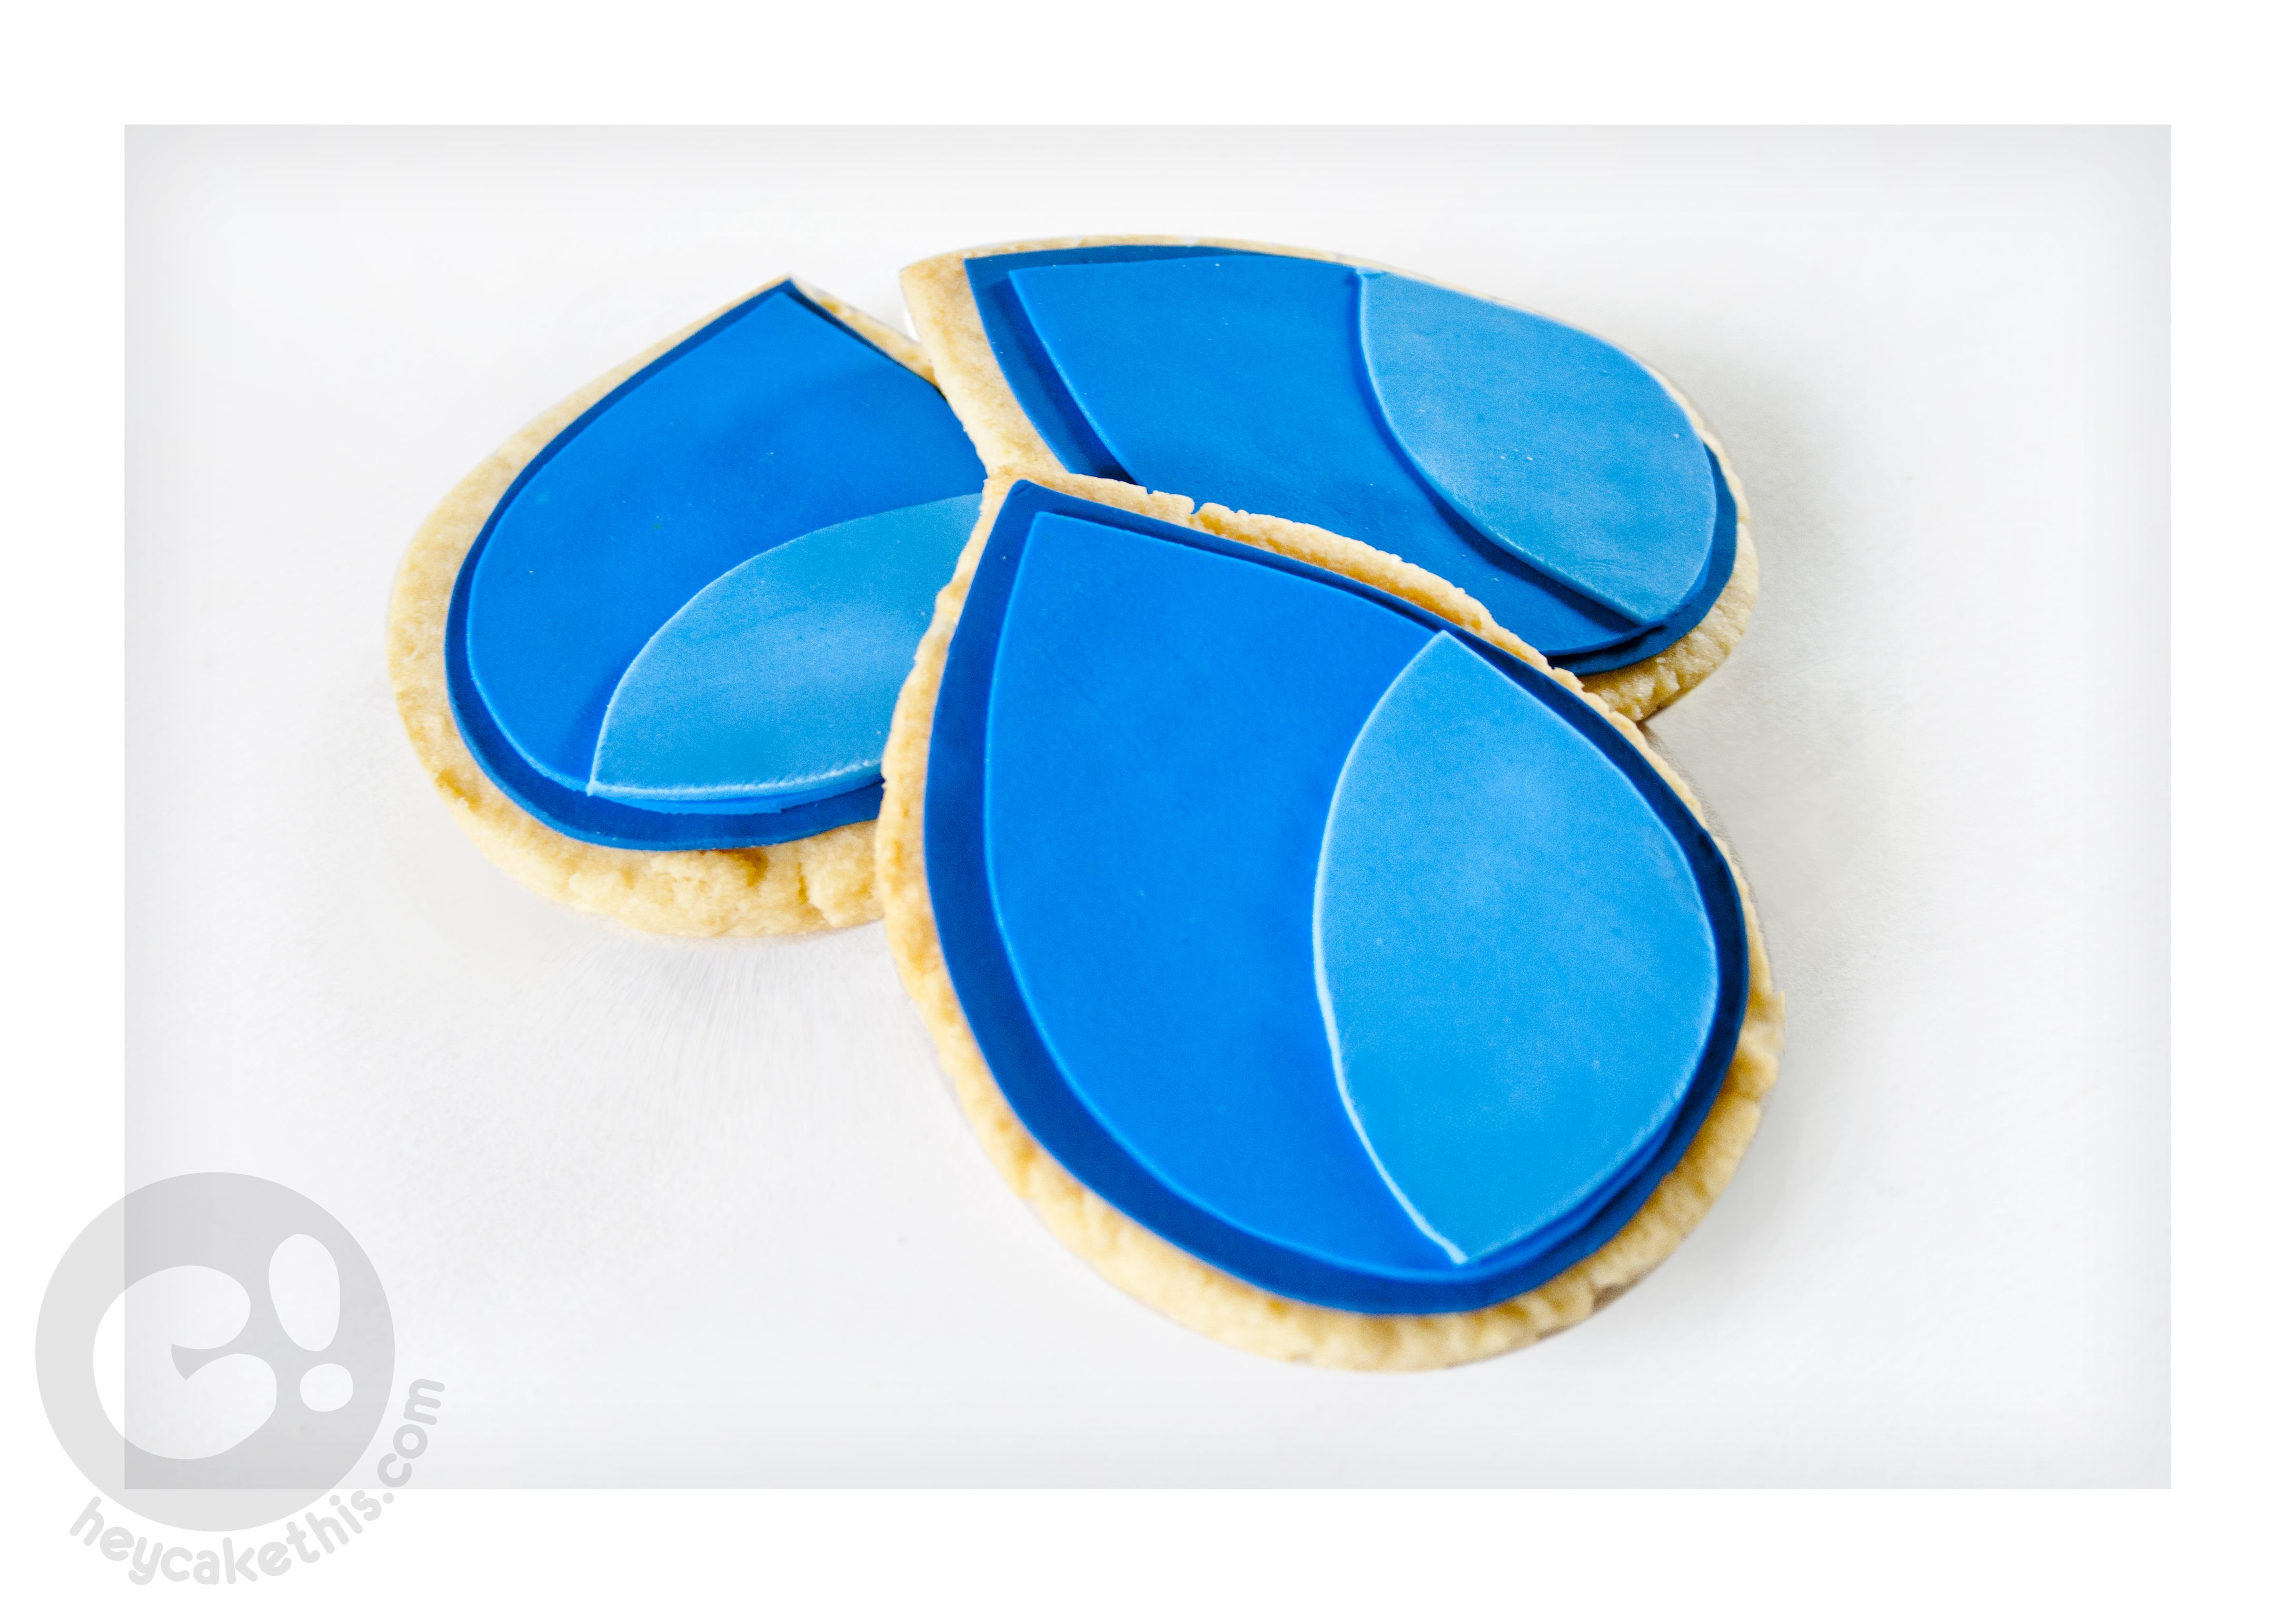 Lapis Lazuli cookies inspired by the cartoon Steven Universe | Sweet  treats, Lapis lazuli, Lapis